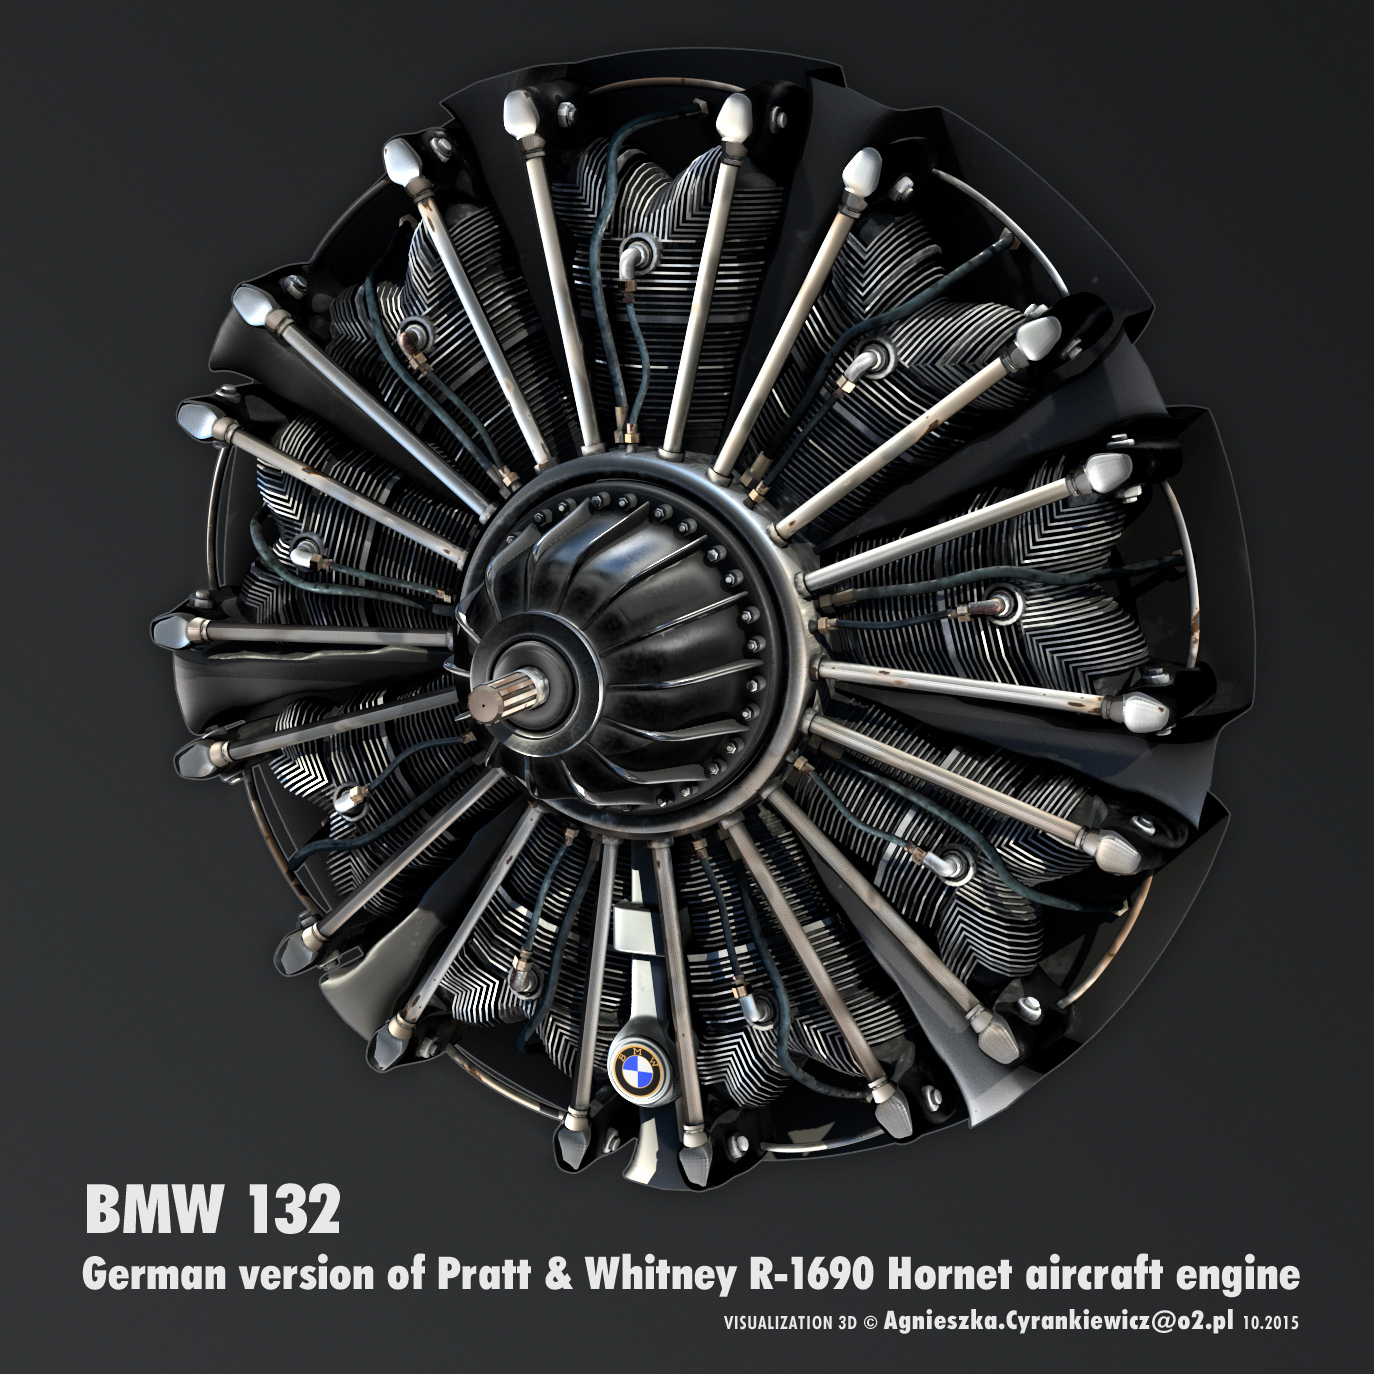 BMW-132 aircraft Engine